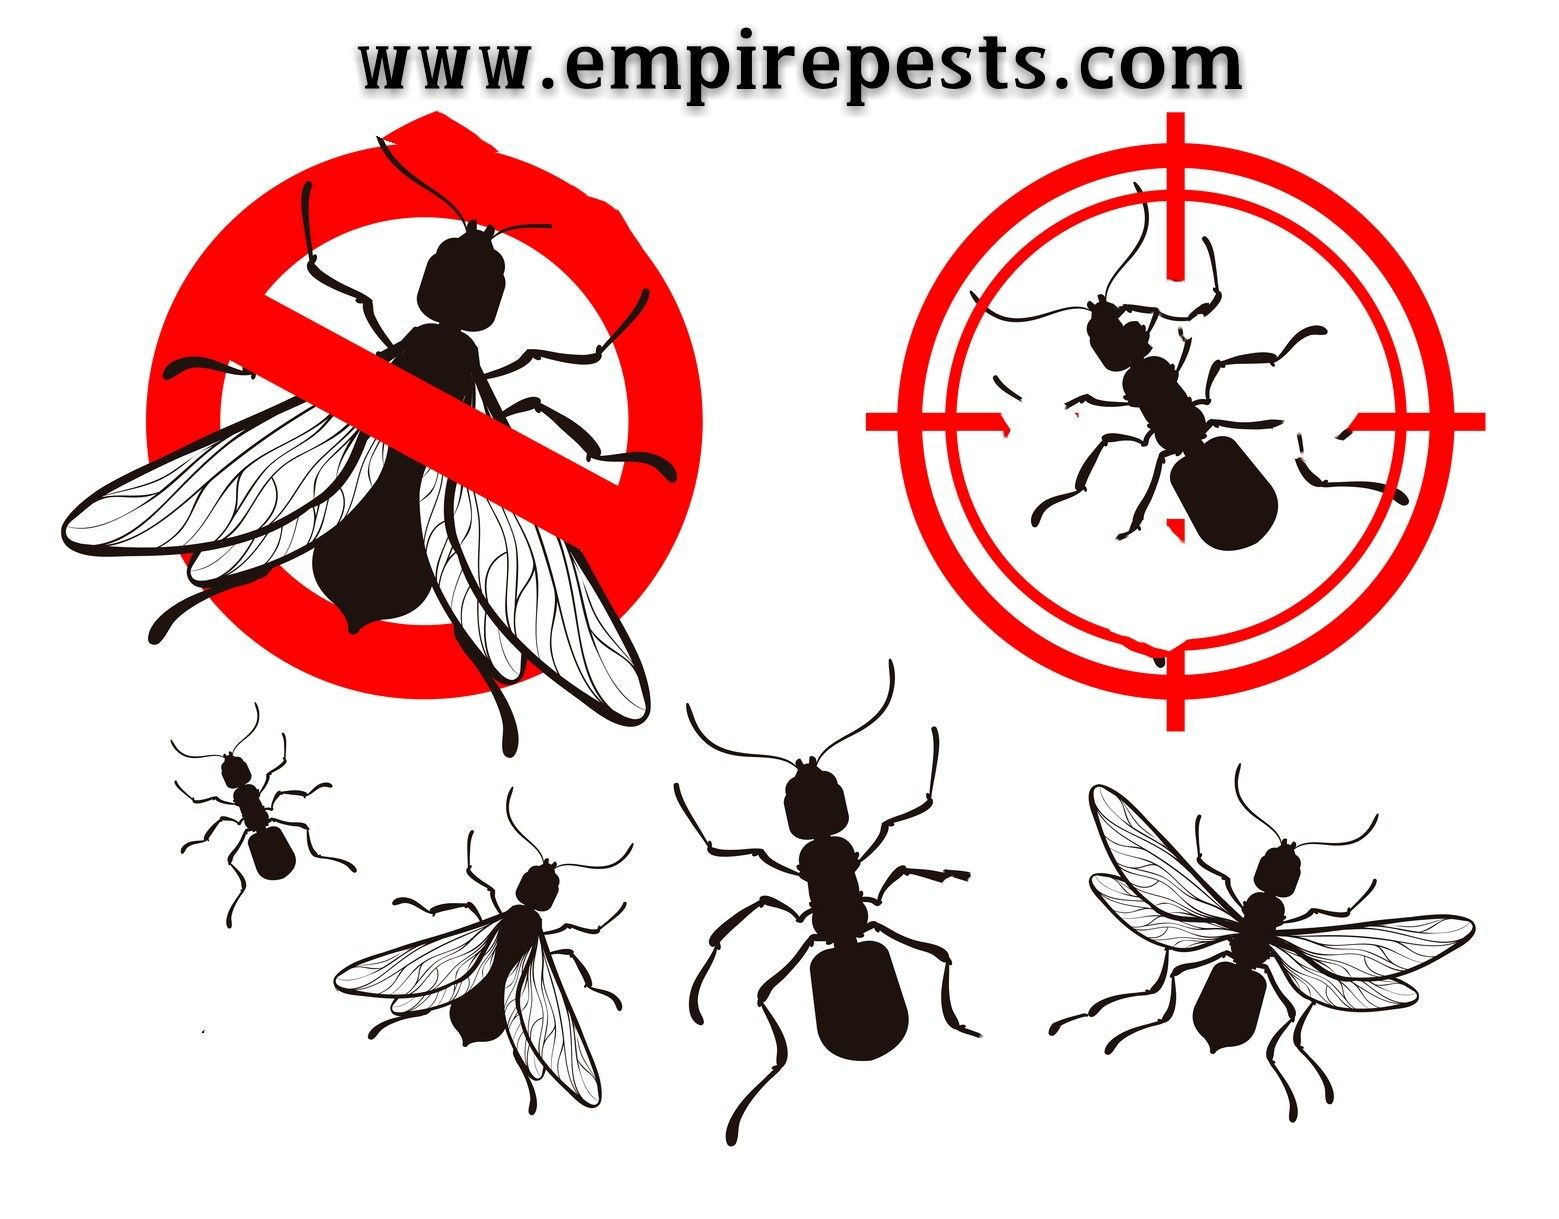 Looking for Emergency Pest Control in Toronto? Call Empire